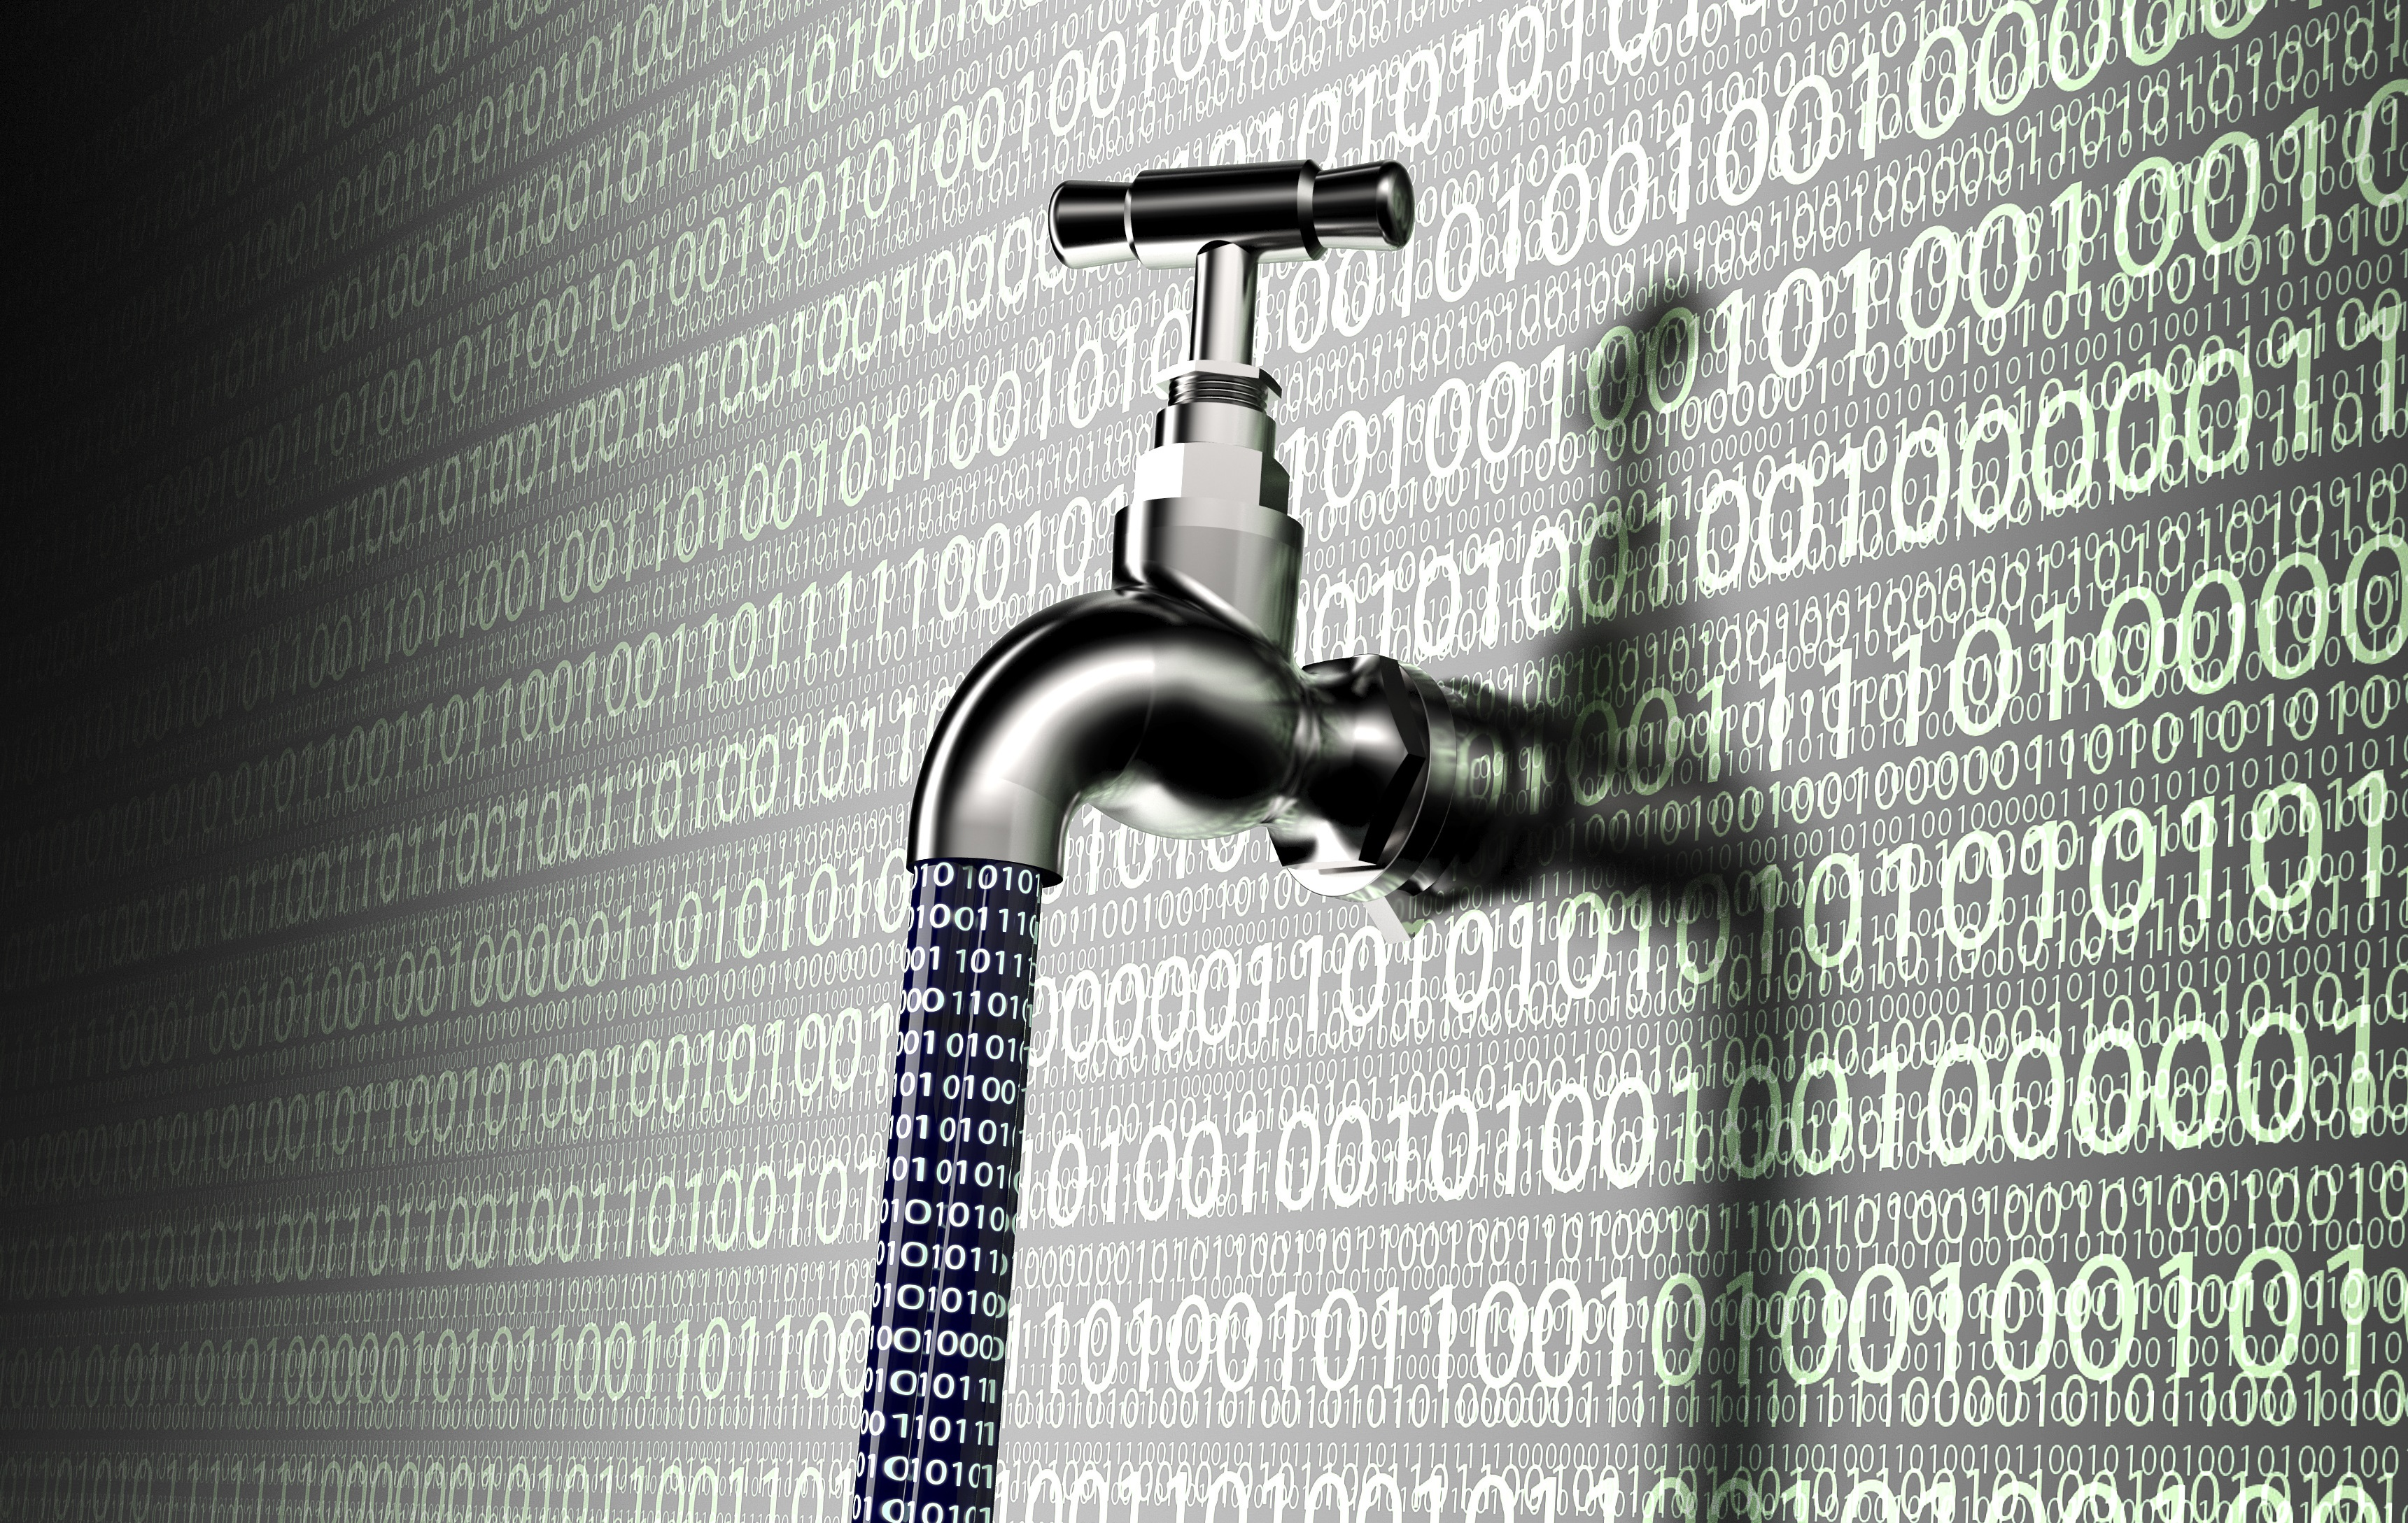 Chris Vickery Discusses Data Leak of 48 Million Users by Private Intelligence Firm